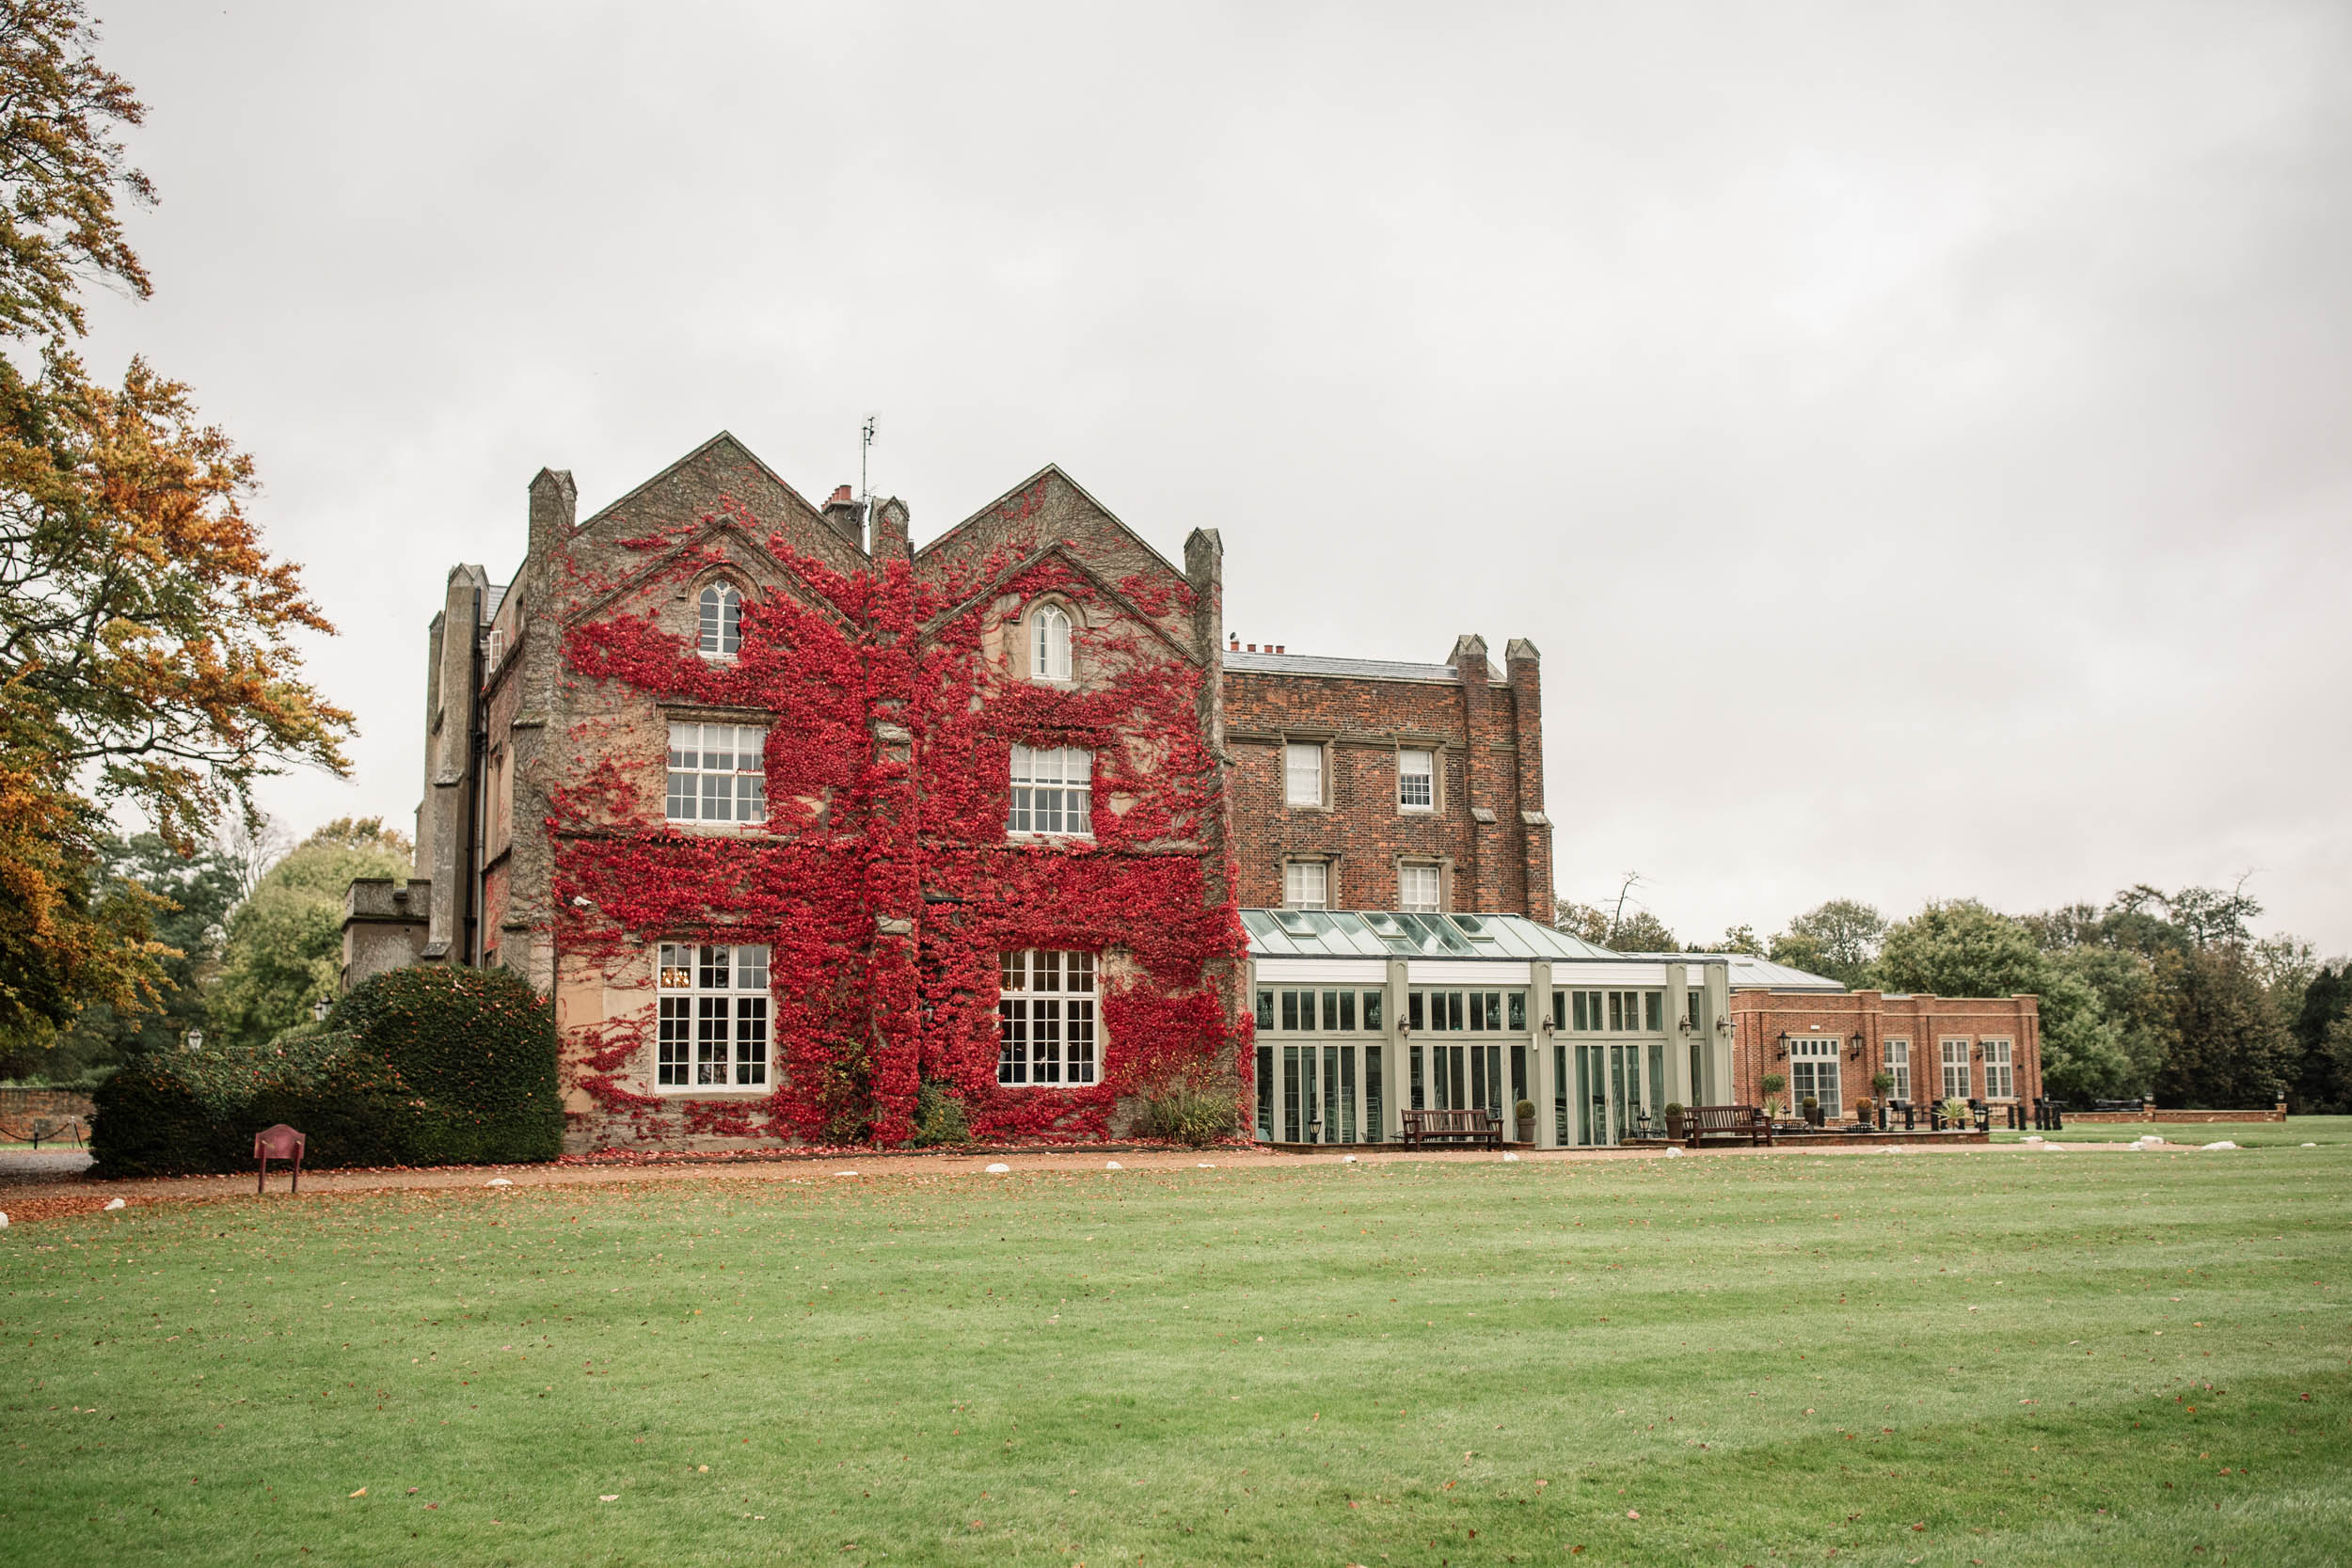 Frontage of Offley Place in the autumn taken by Becky Harley Photography